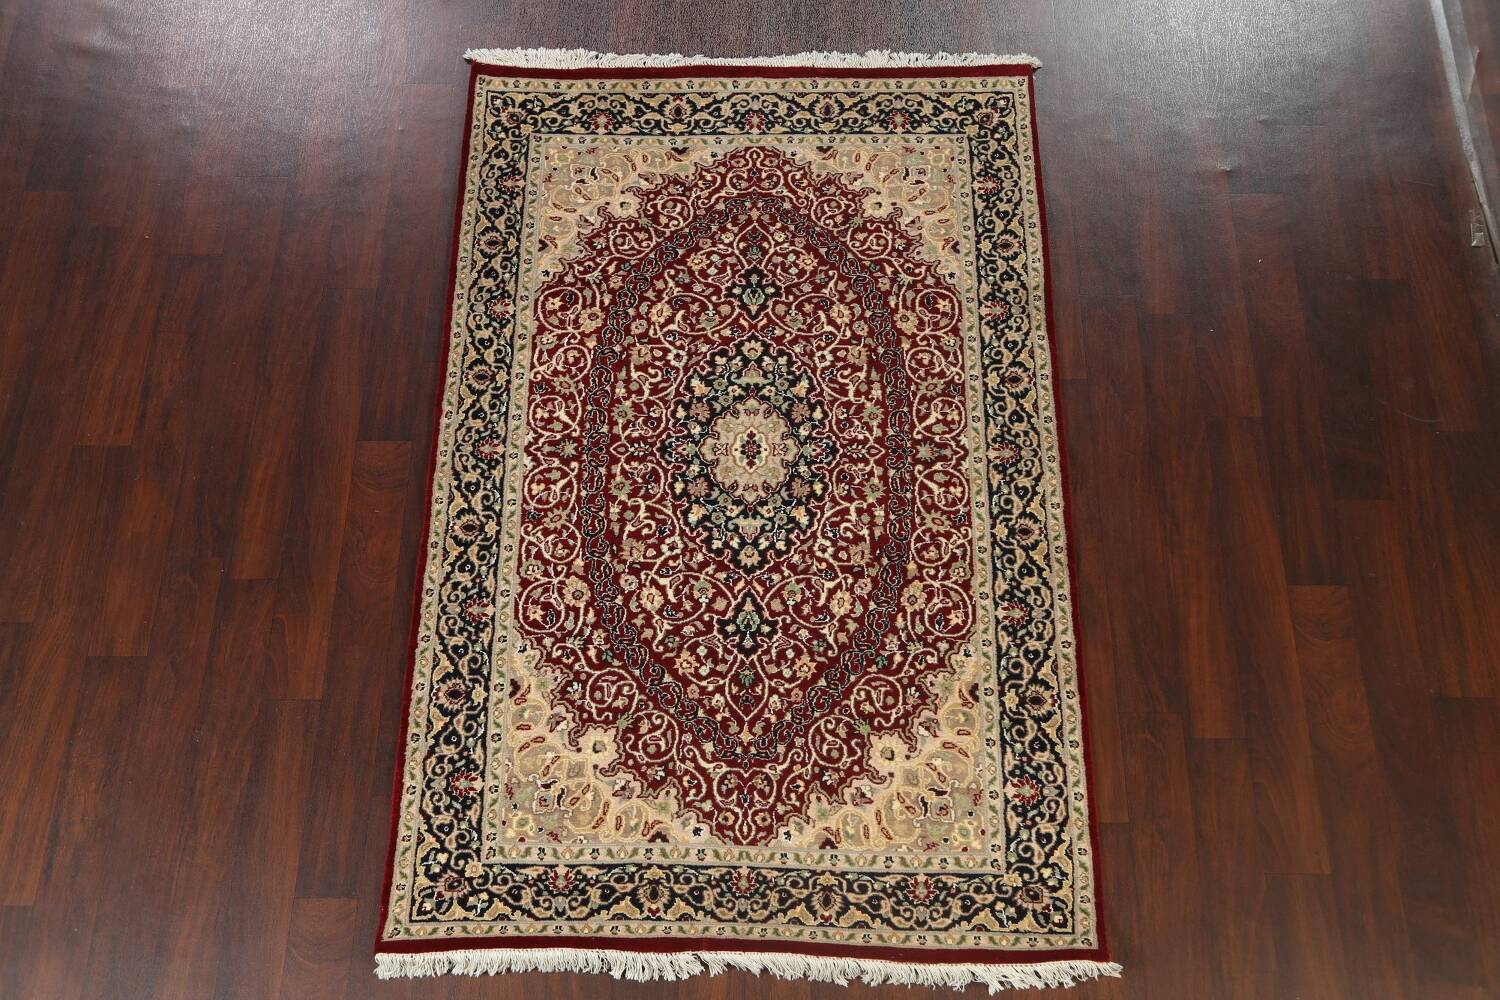 Vegetable Dye Floral Tabriz Oriental Area Rug 5x7 image 13